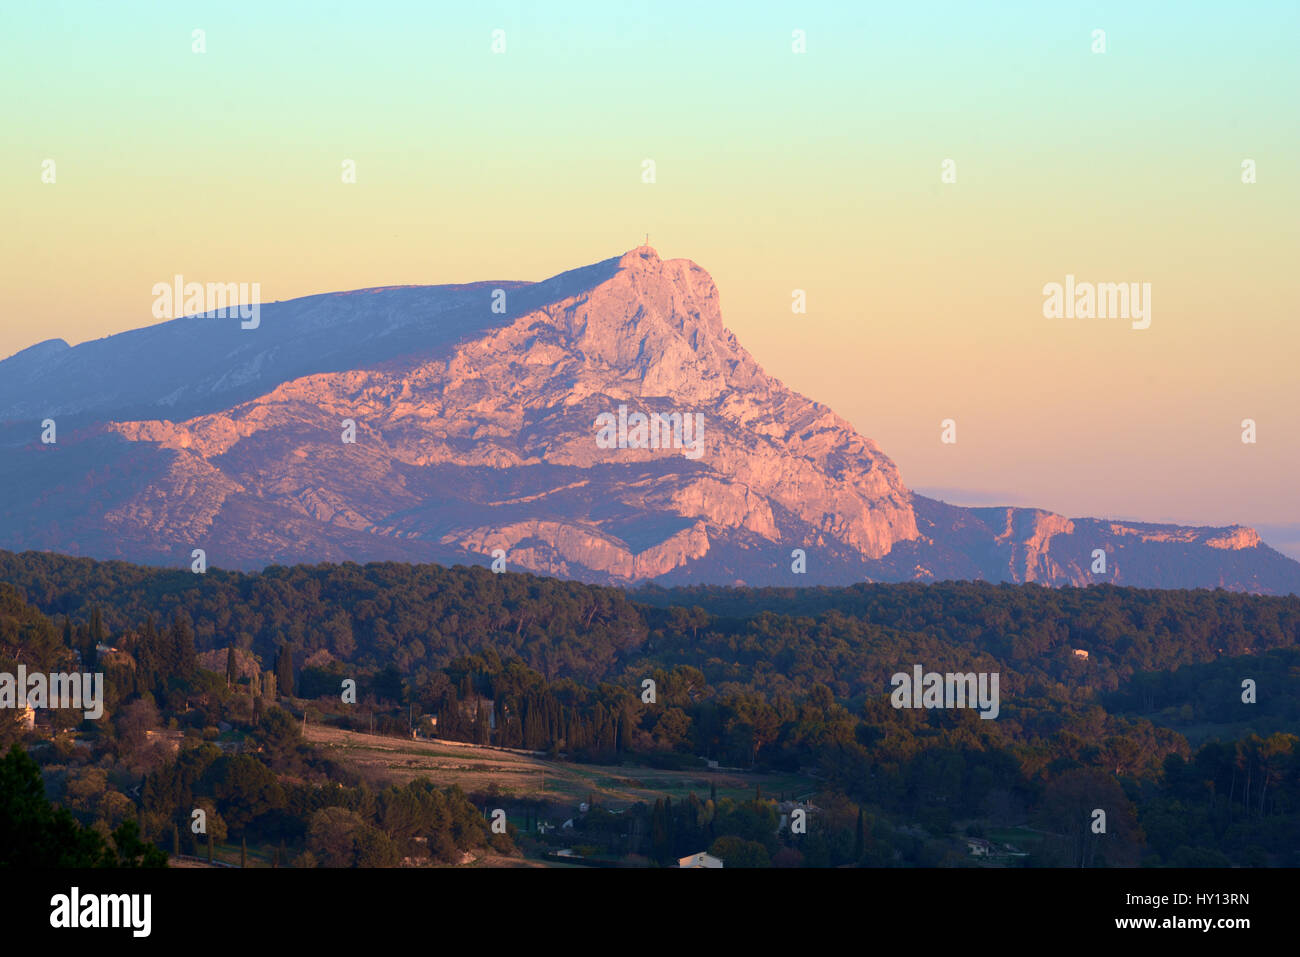 Mont Sainte-Victoire or Montagne Sainte-Victoire, an Iconic Mountain near Aix-en-Provence frequently painted by - Stock Image